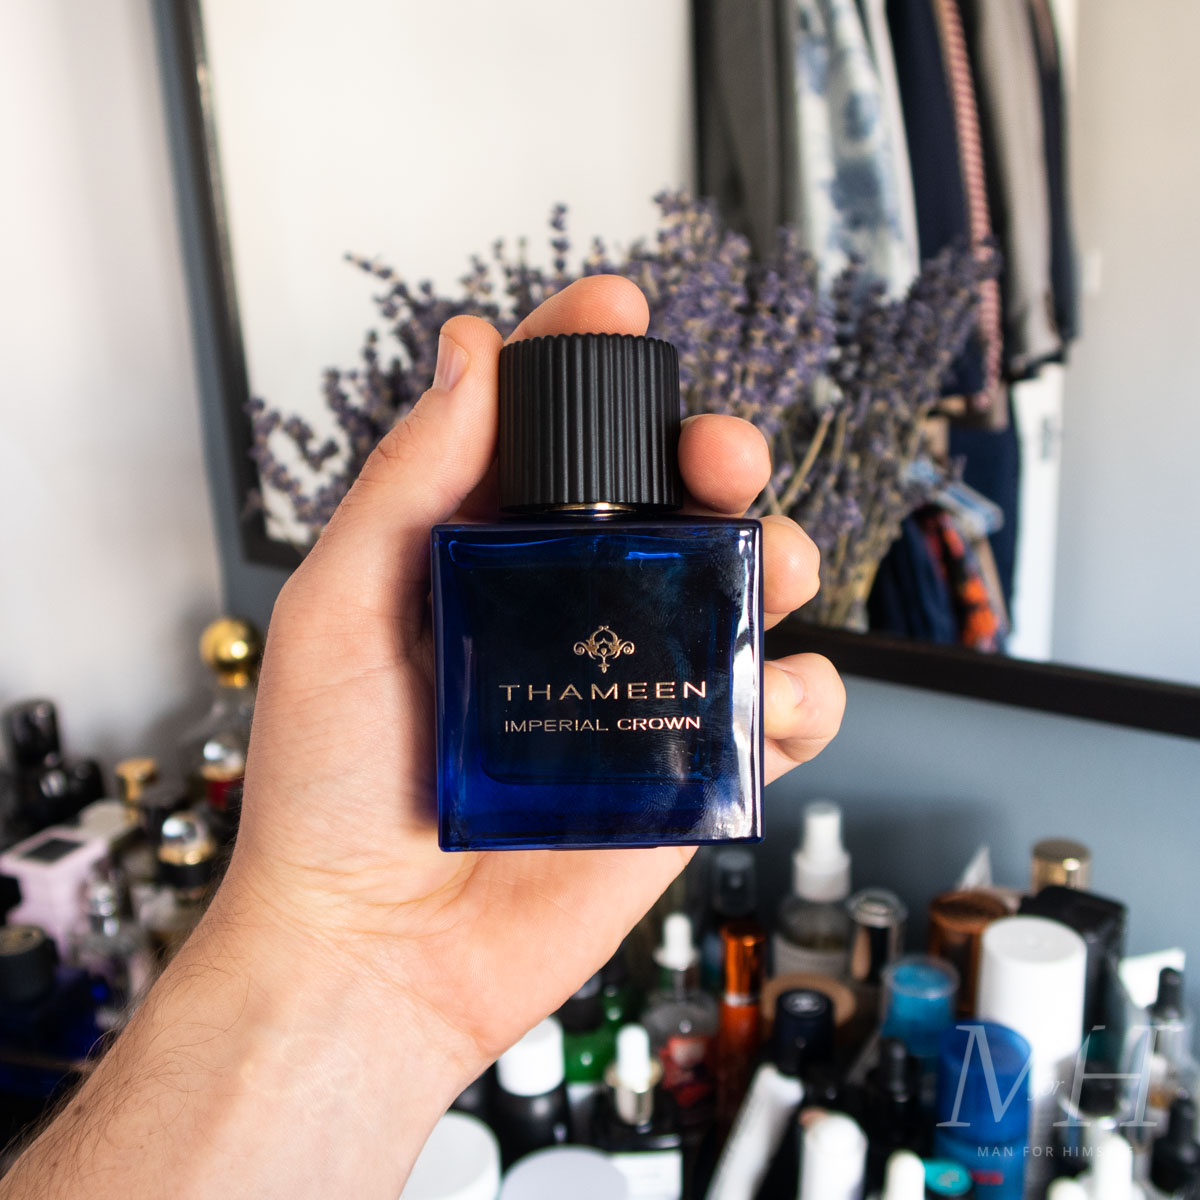 thameen-imperial-crown-fragrance-grooming-product-review-man-for-himself-1